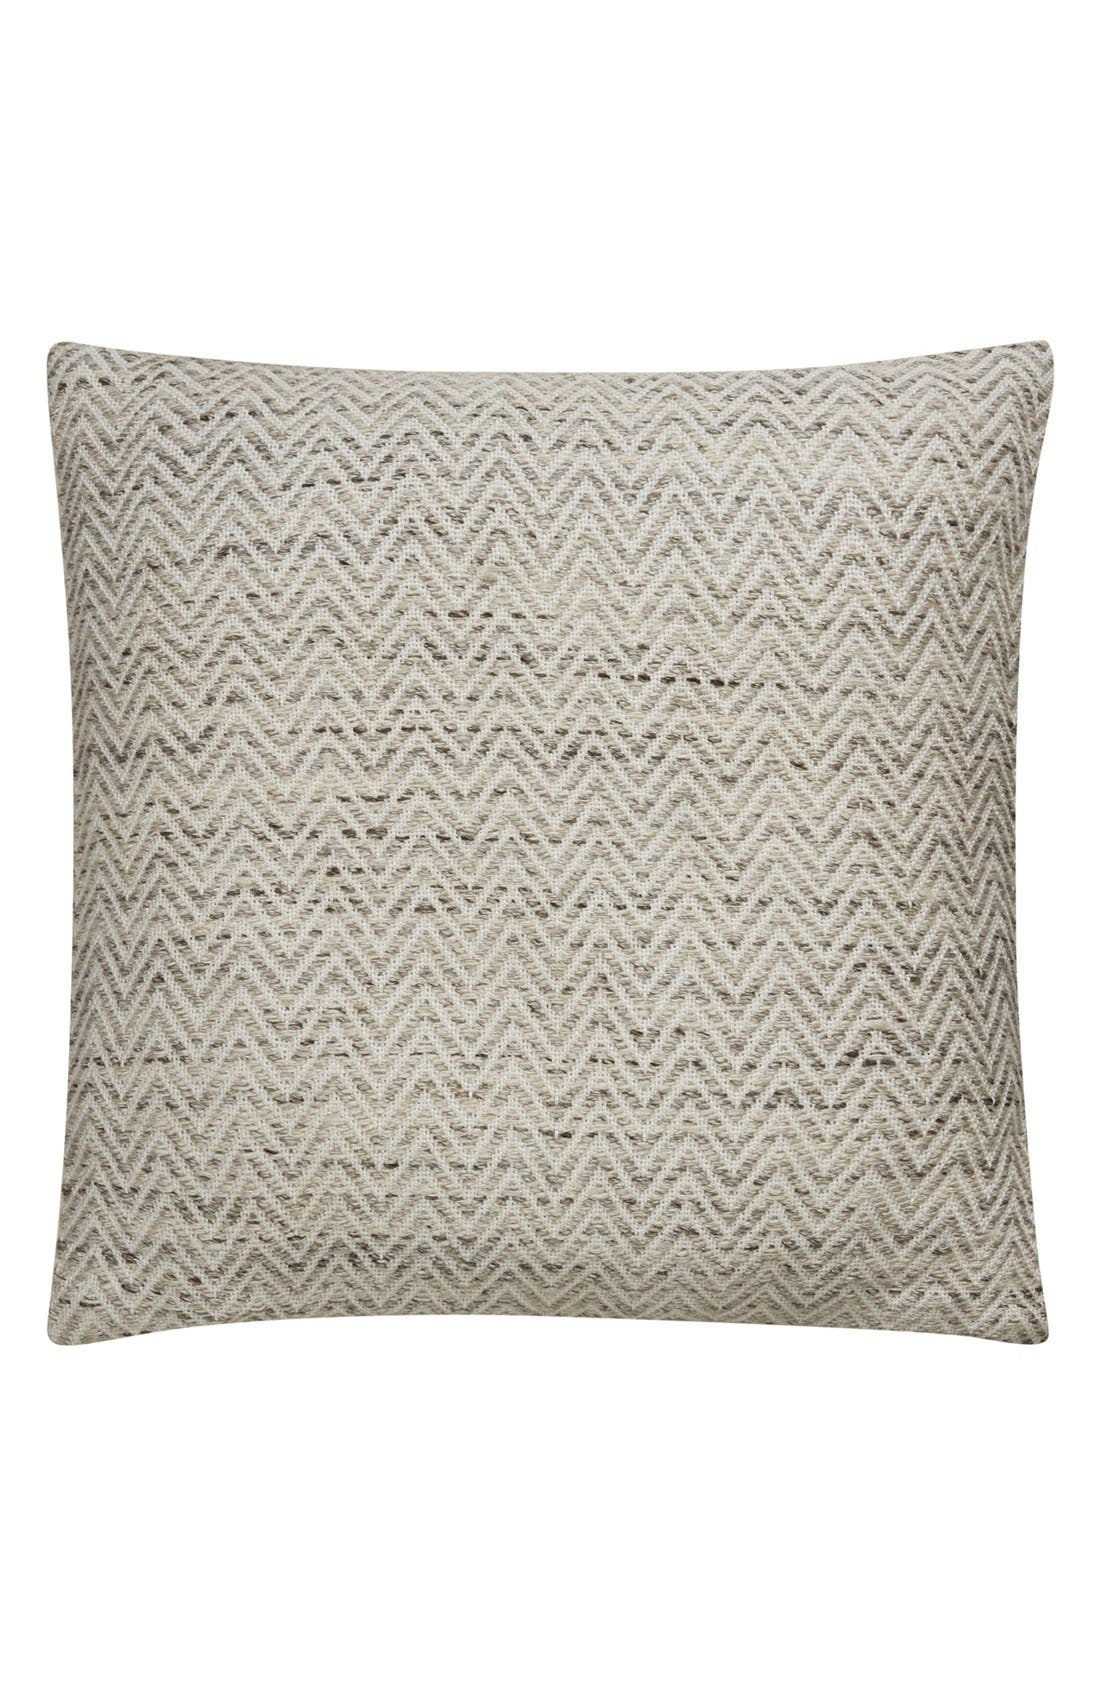 'Peykan' Pillow,                         Main,                         color, IVORY/ BLACK